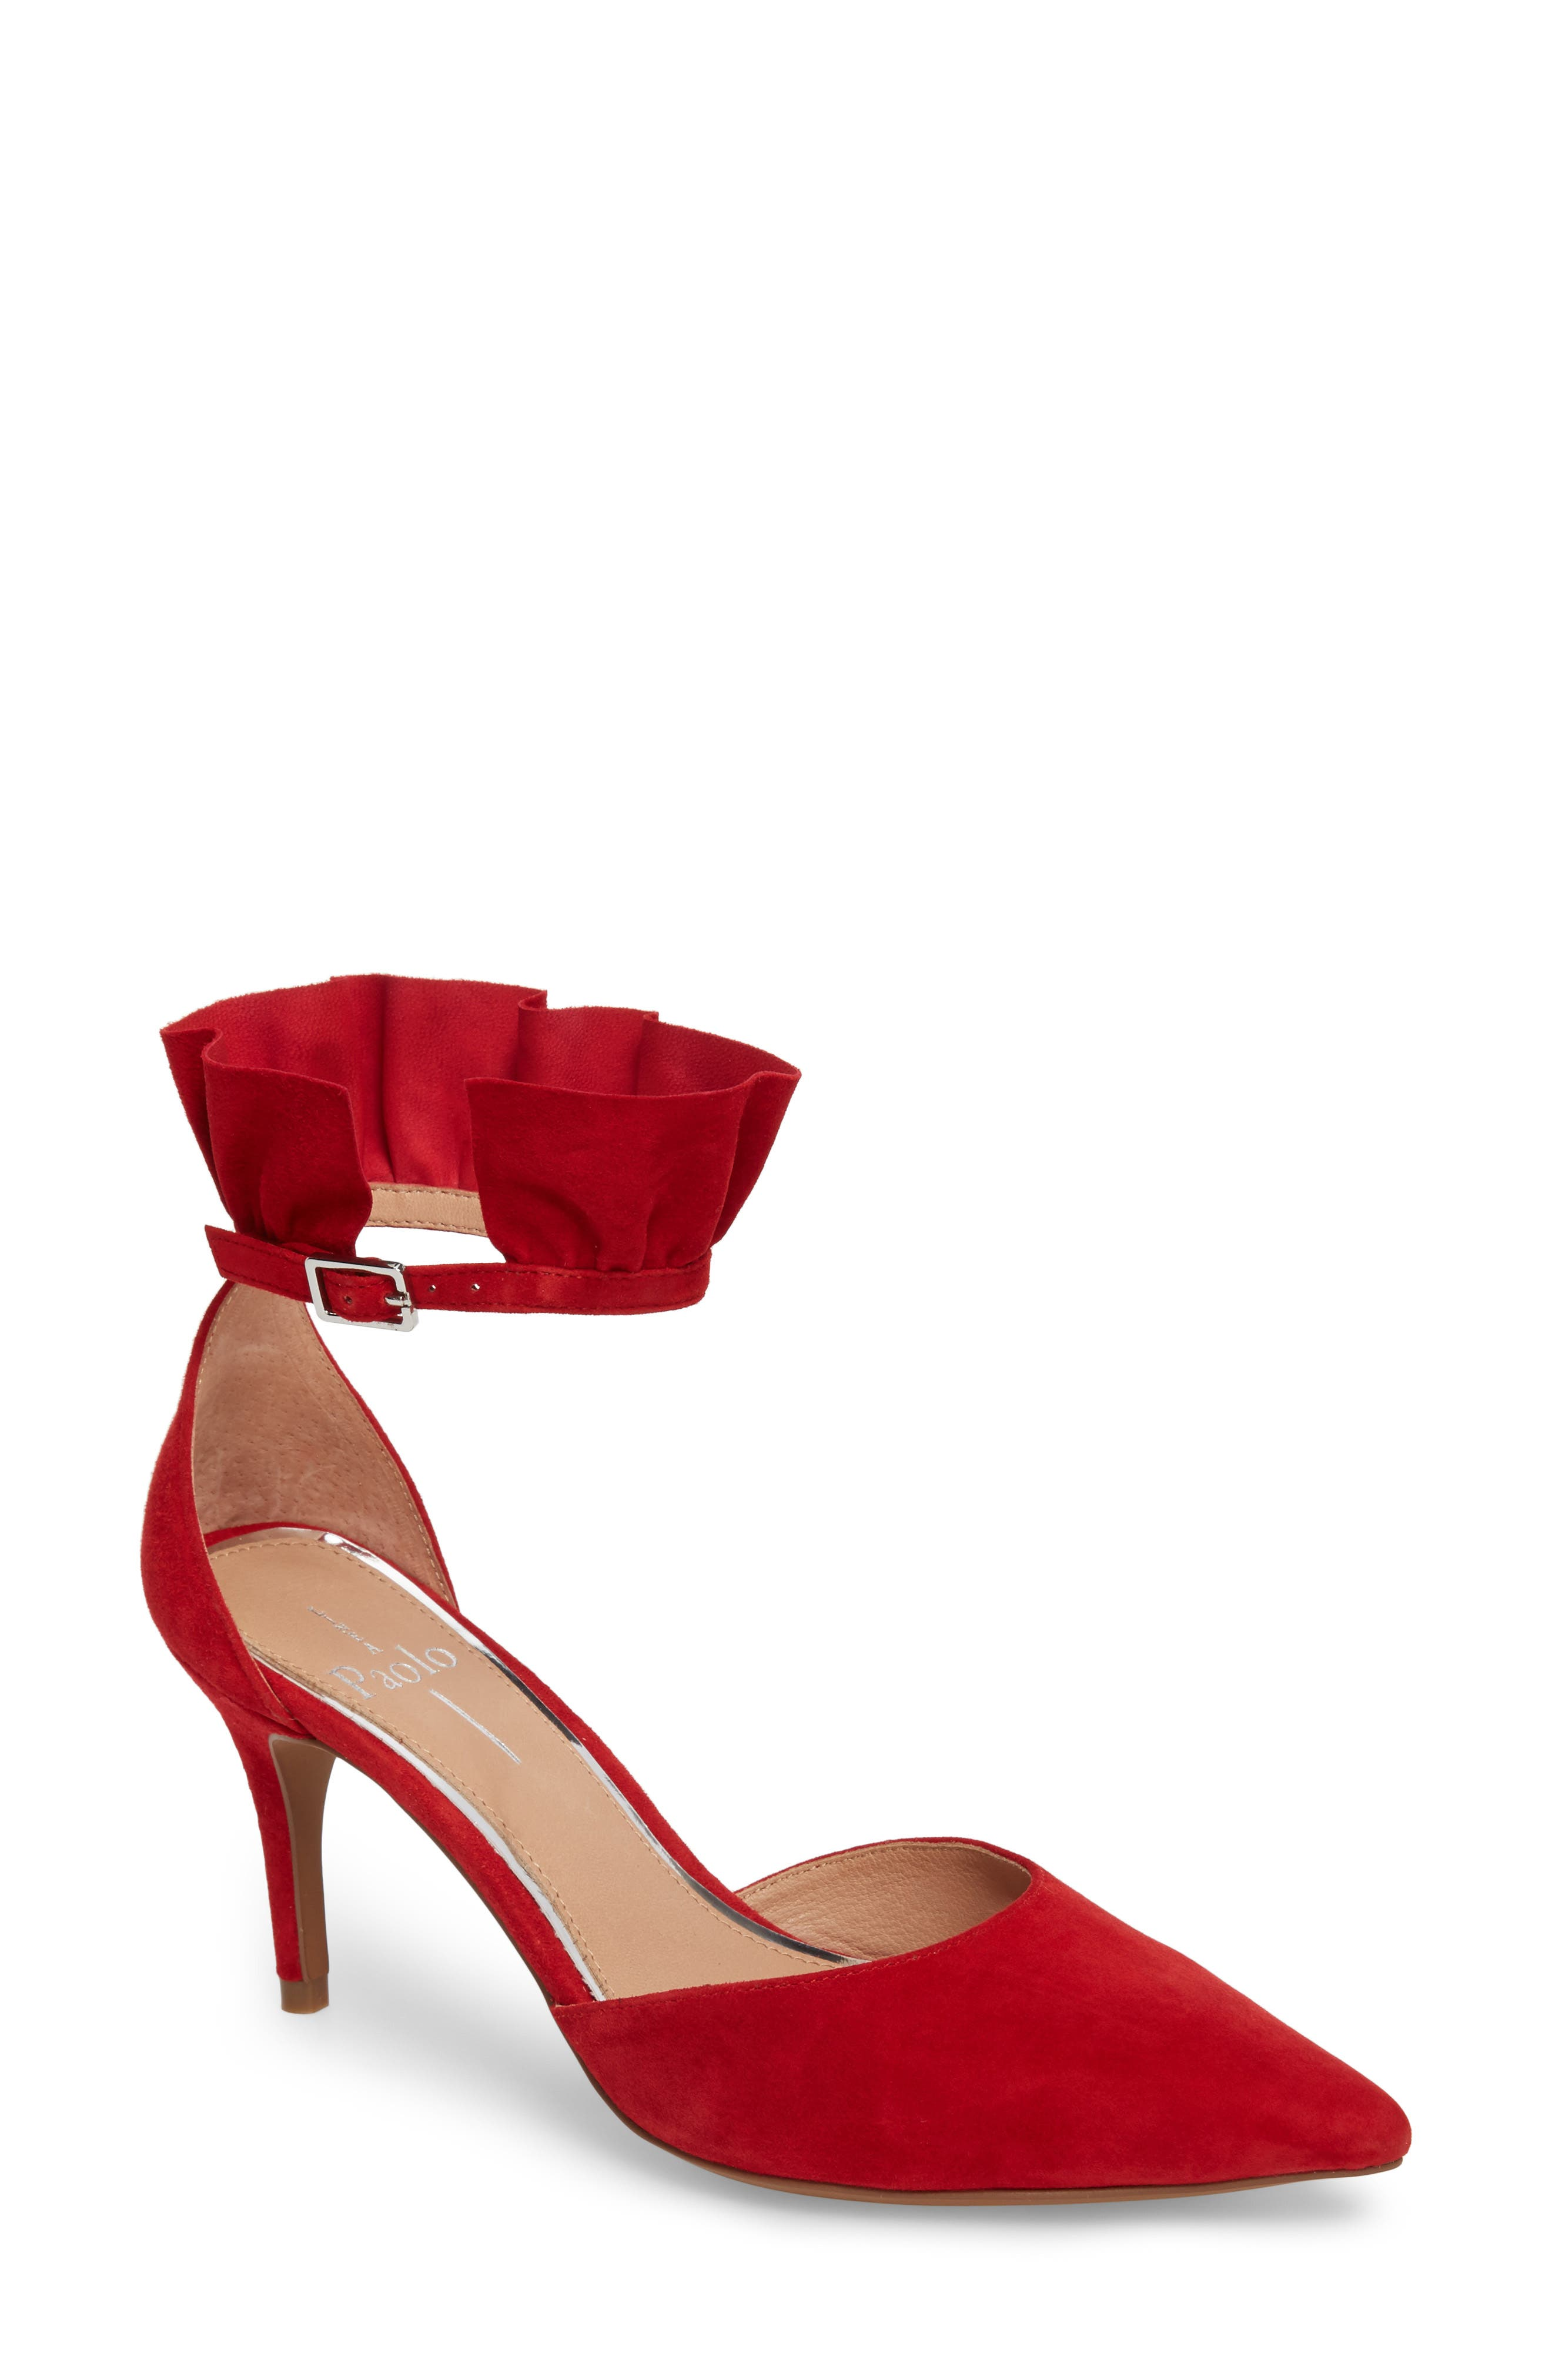 Pammy Ruffled Pointy Toe Pump,                         Main,                         color, Red Suede